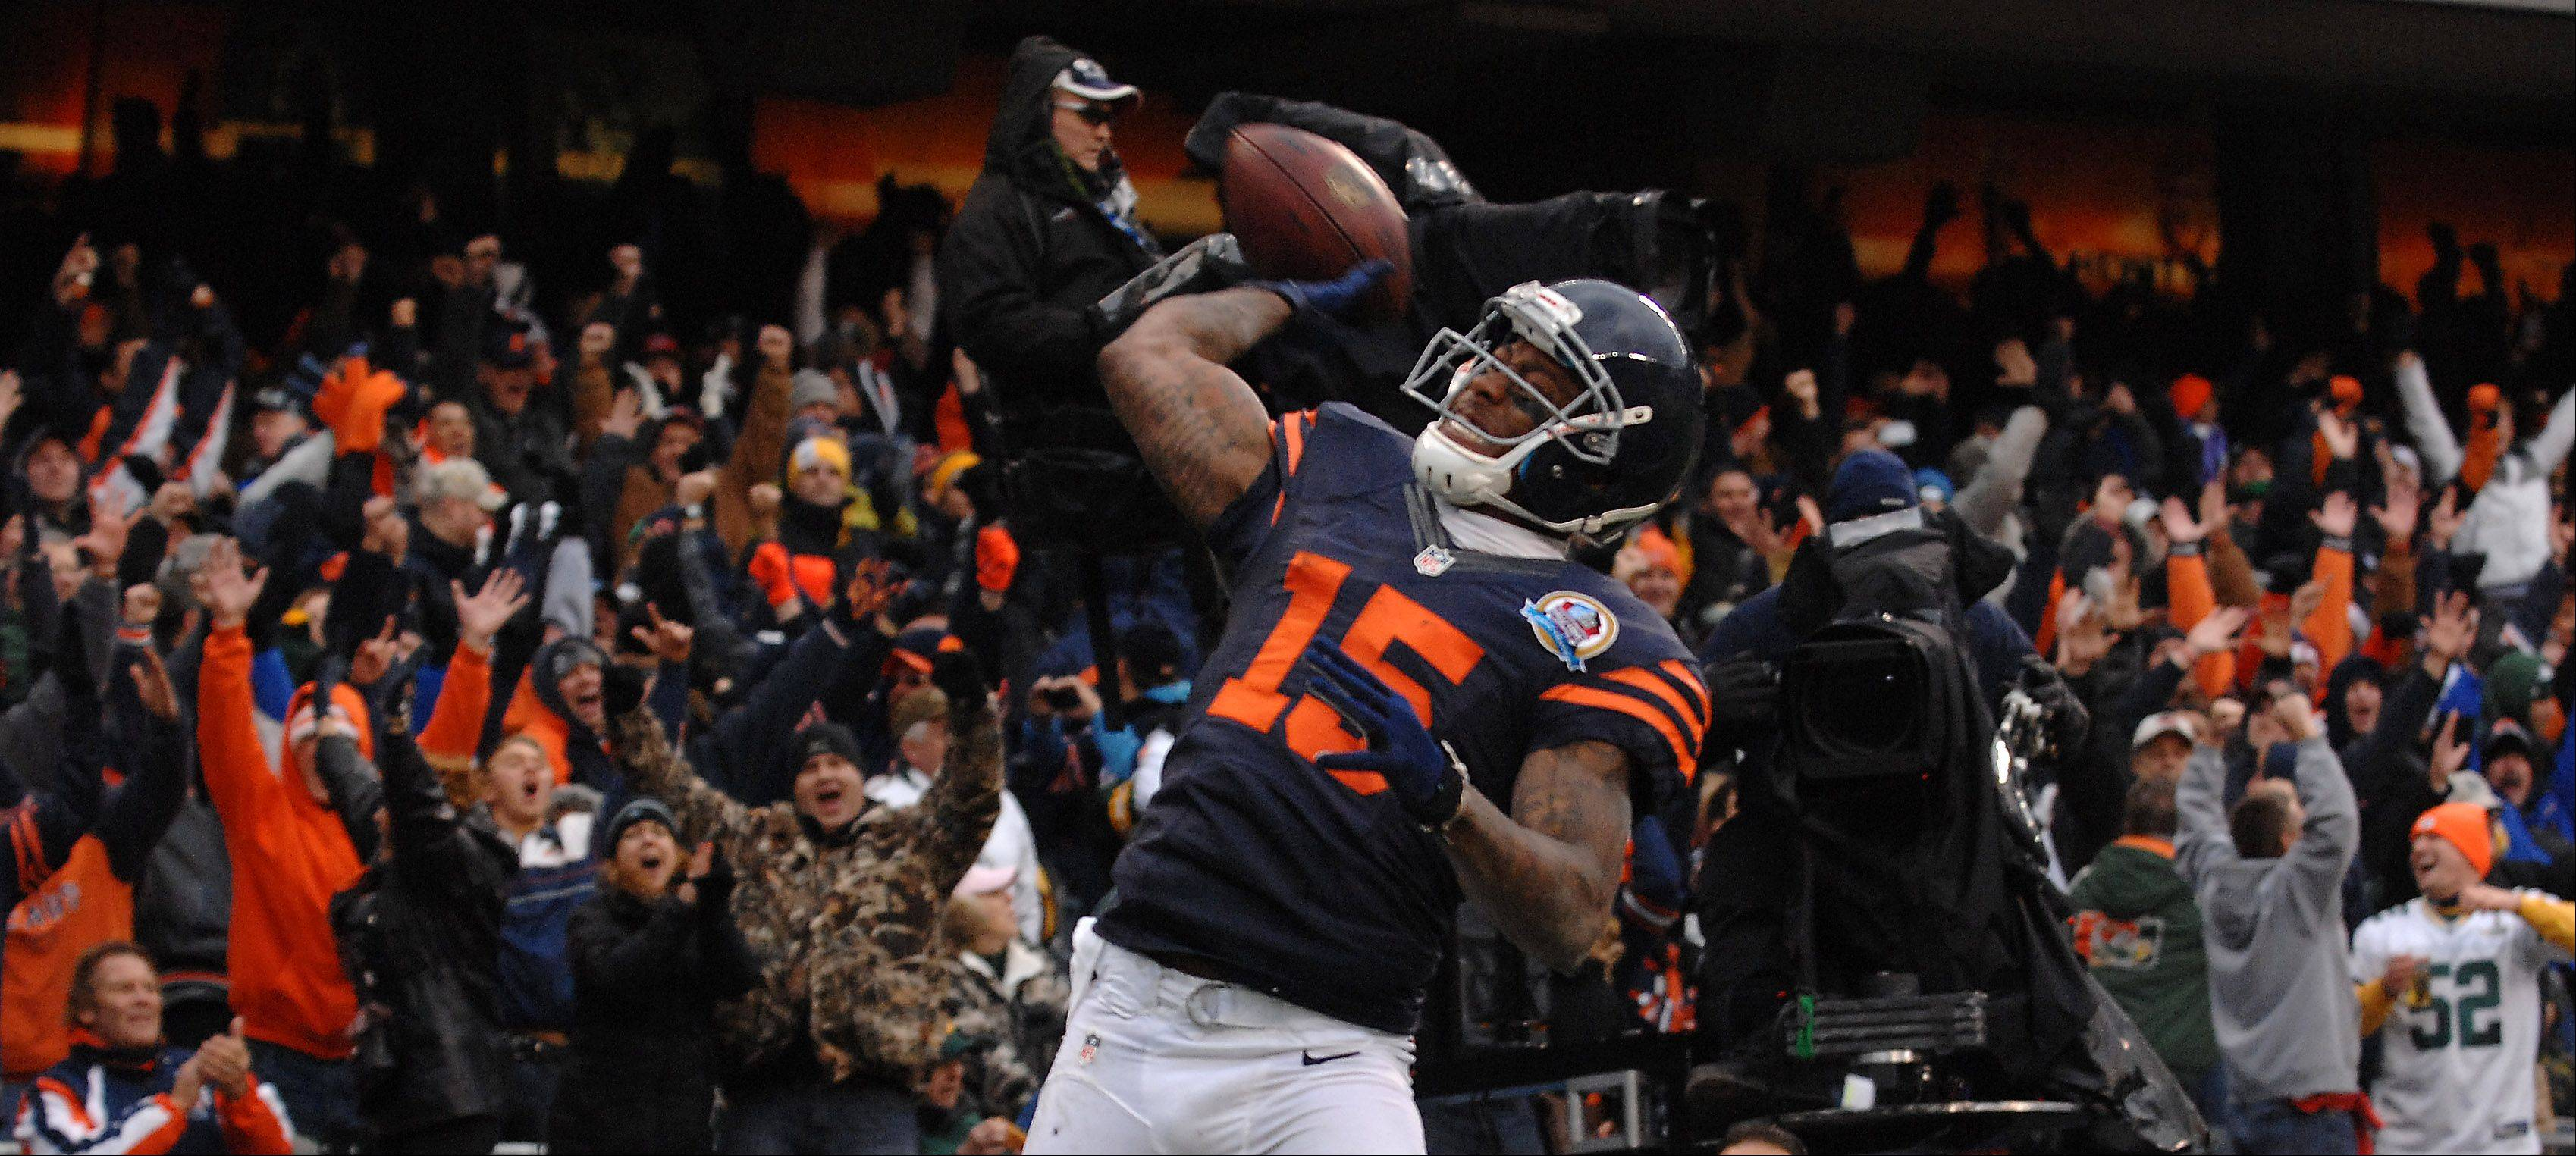 Rick West/rwest@dailyherald.com ¬ Chicago Bears wide receiver Brandon Marshall (15) throws the ball into the stands after his second quarter touchdown reception during Sunday's game at Soldier Field in Chicago.